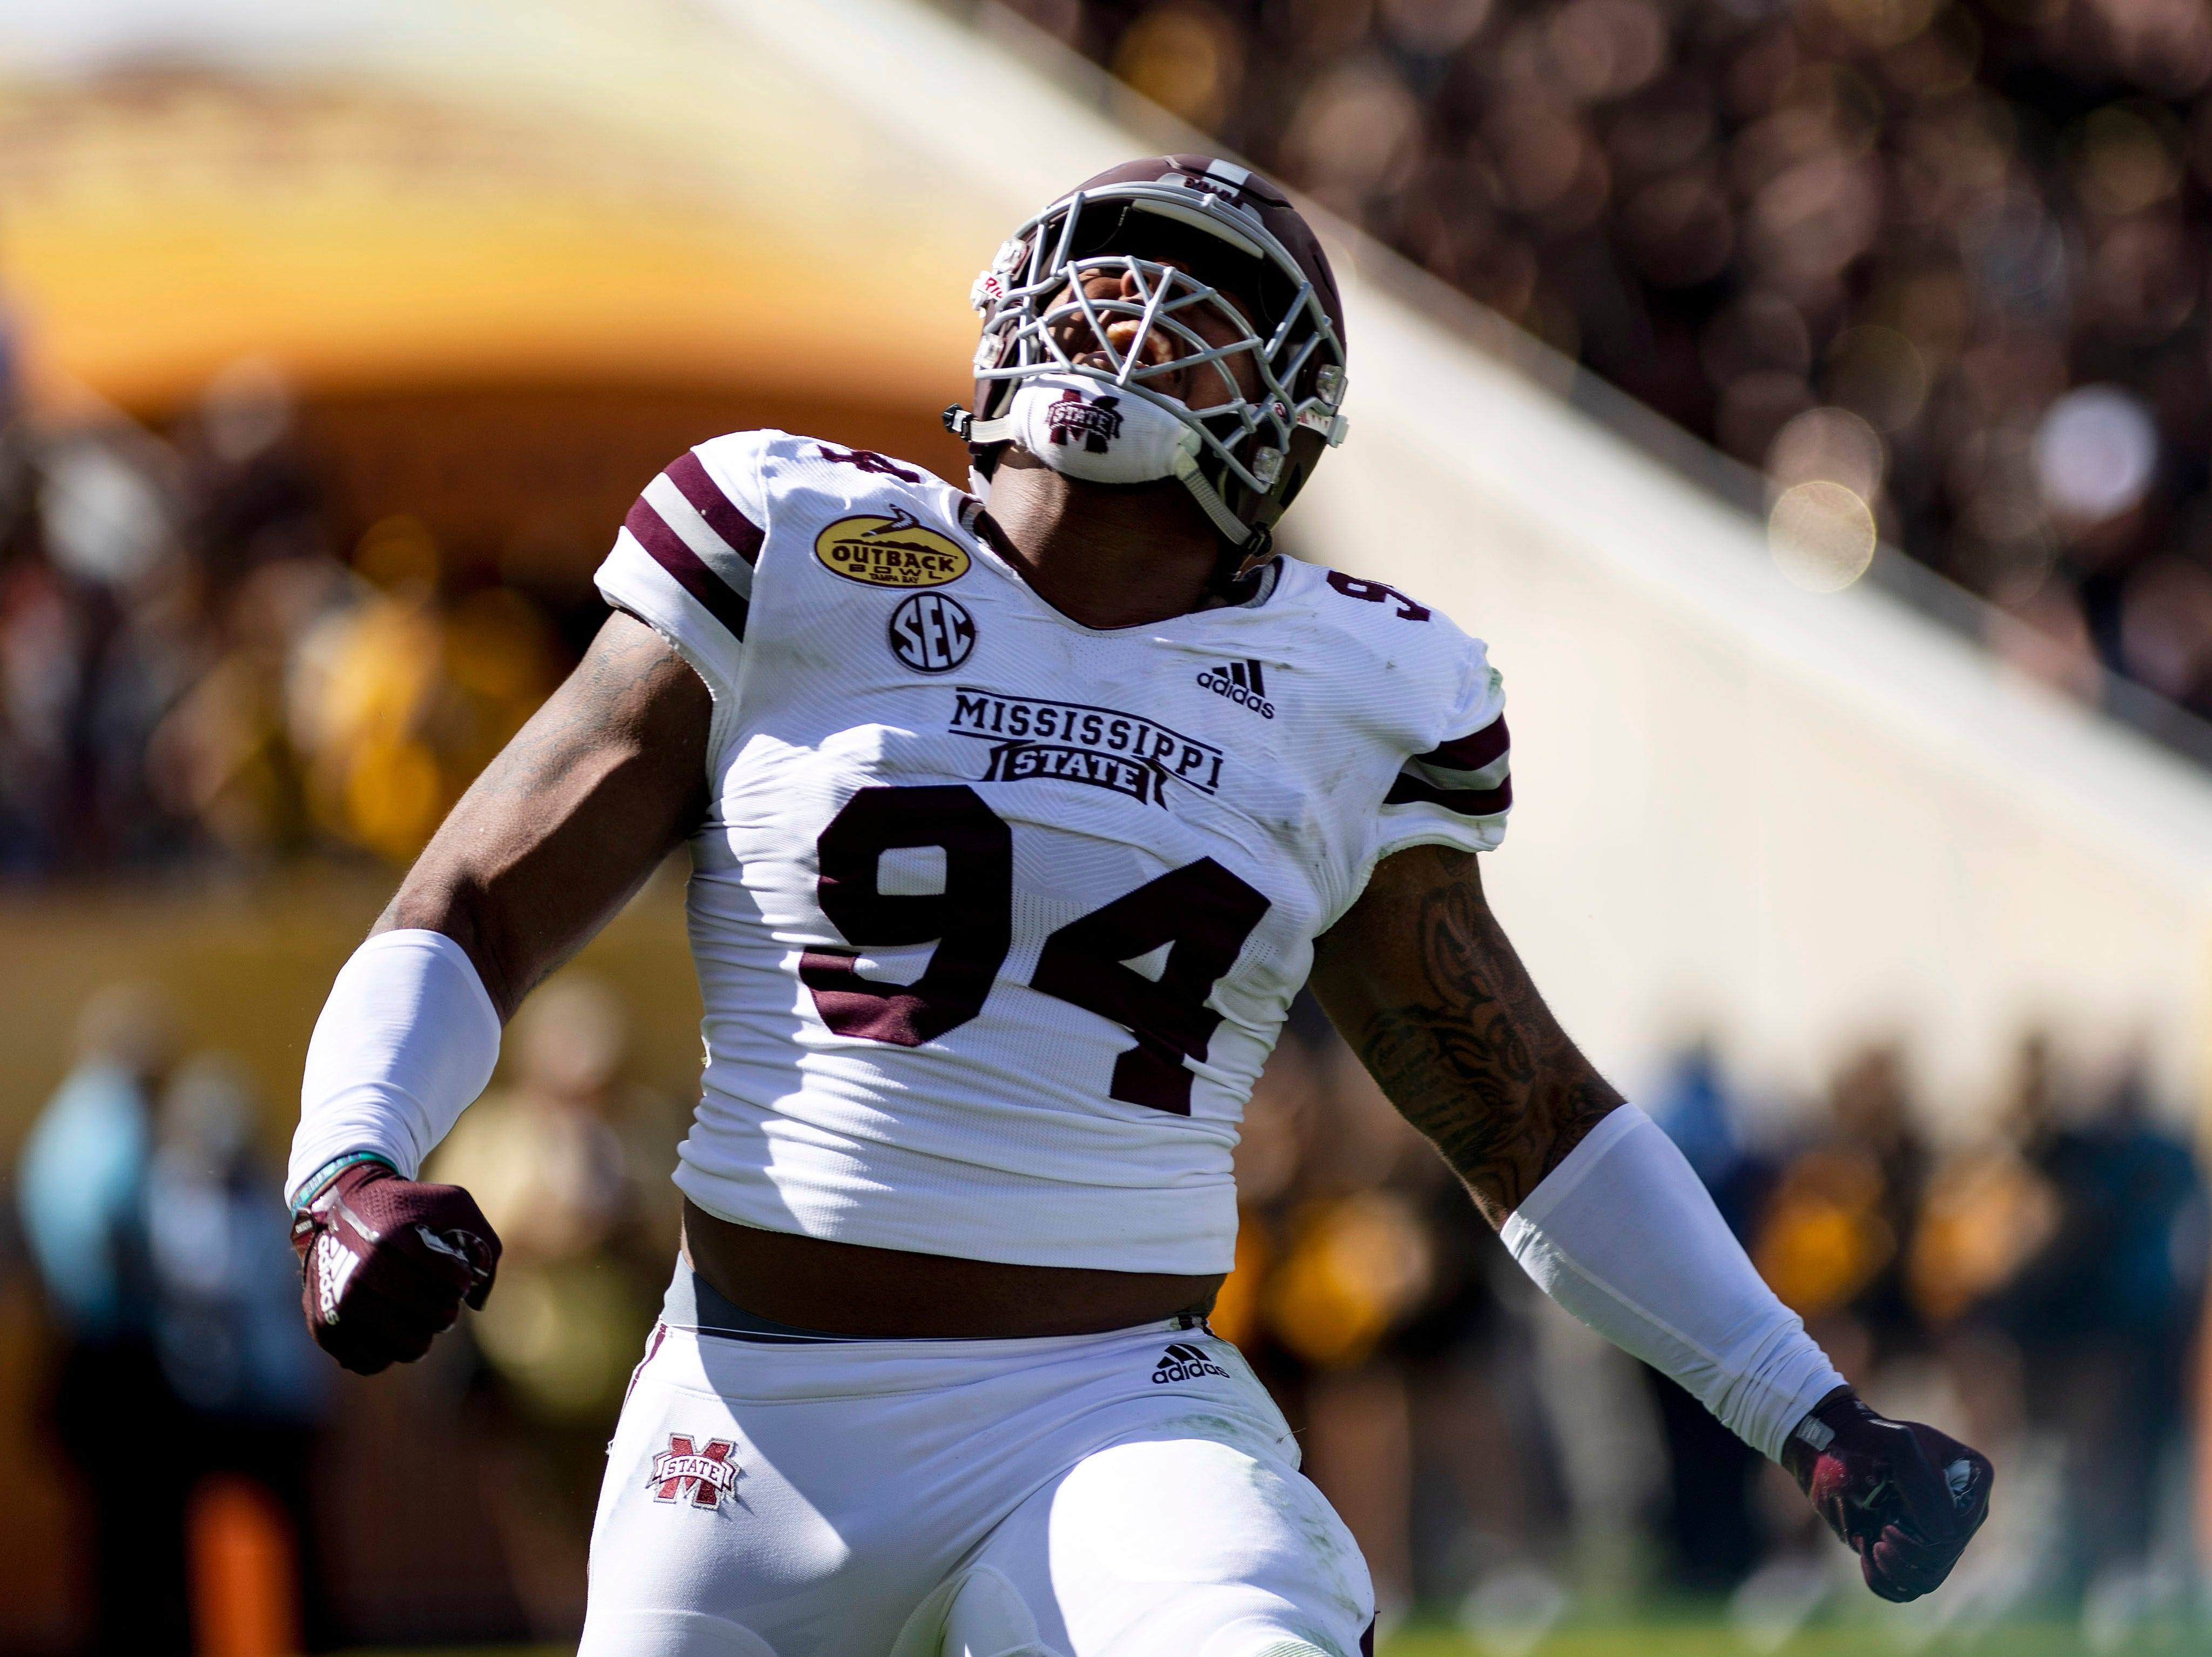 Mississippi State defensive tackle Jeffery Simmons celebrates after getting a sack during a game against Iowa in the Outback Bowl at Raymond James Stadium.